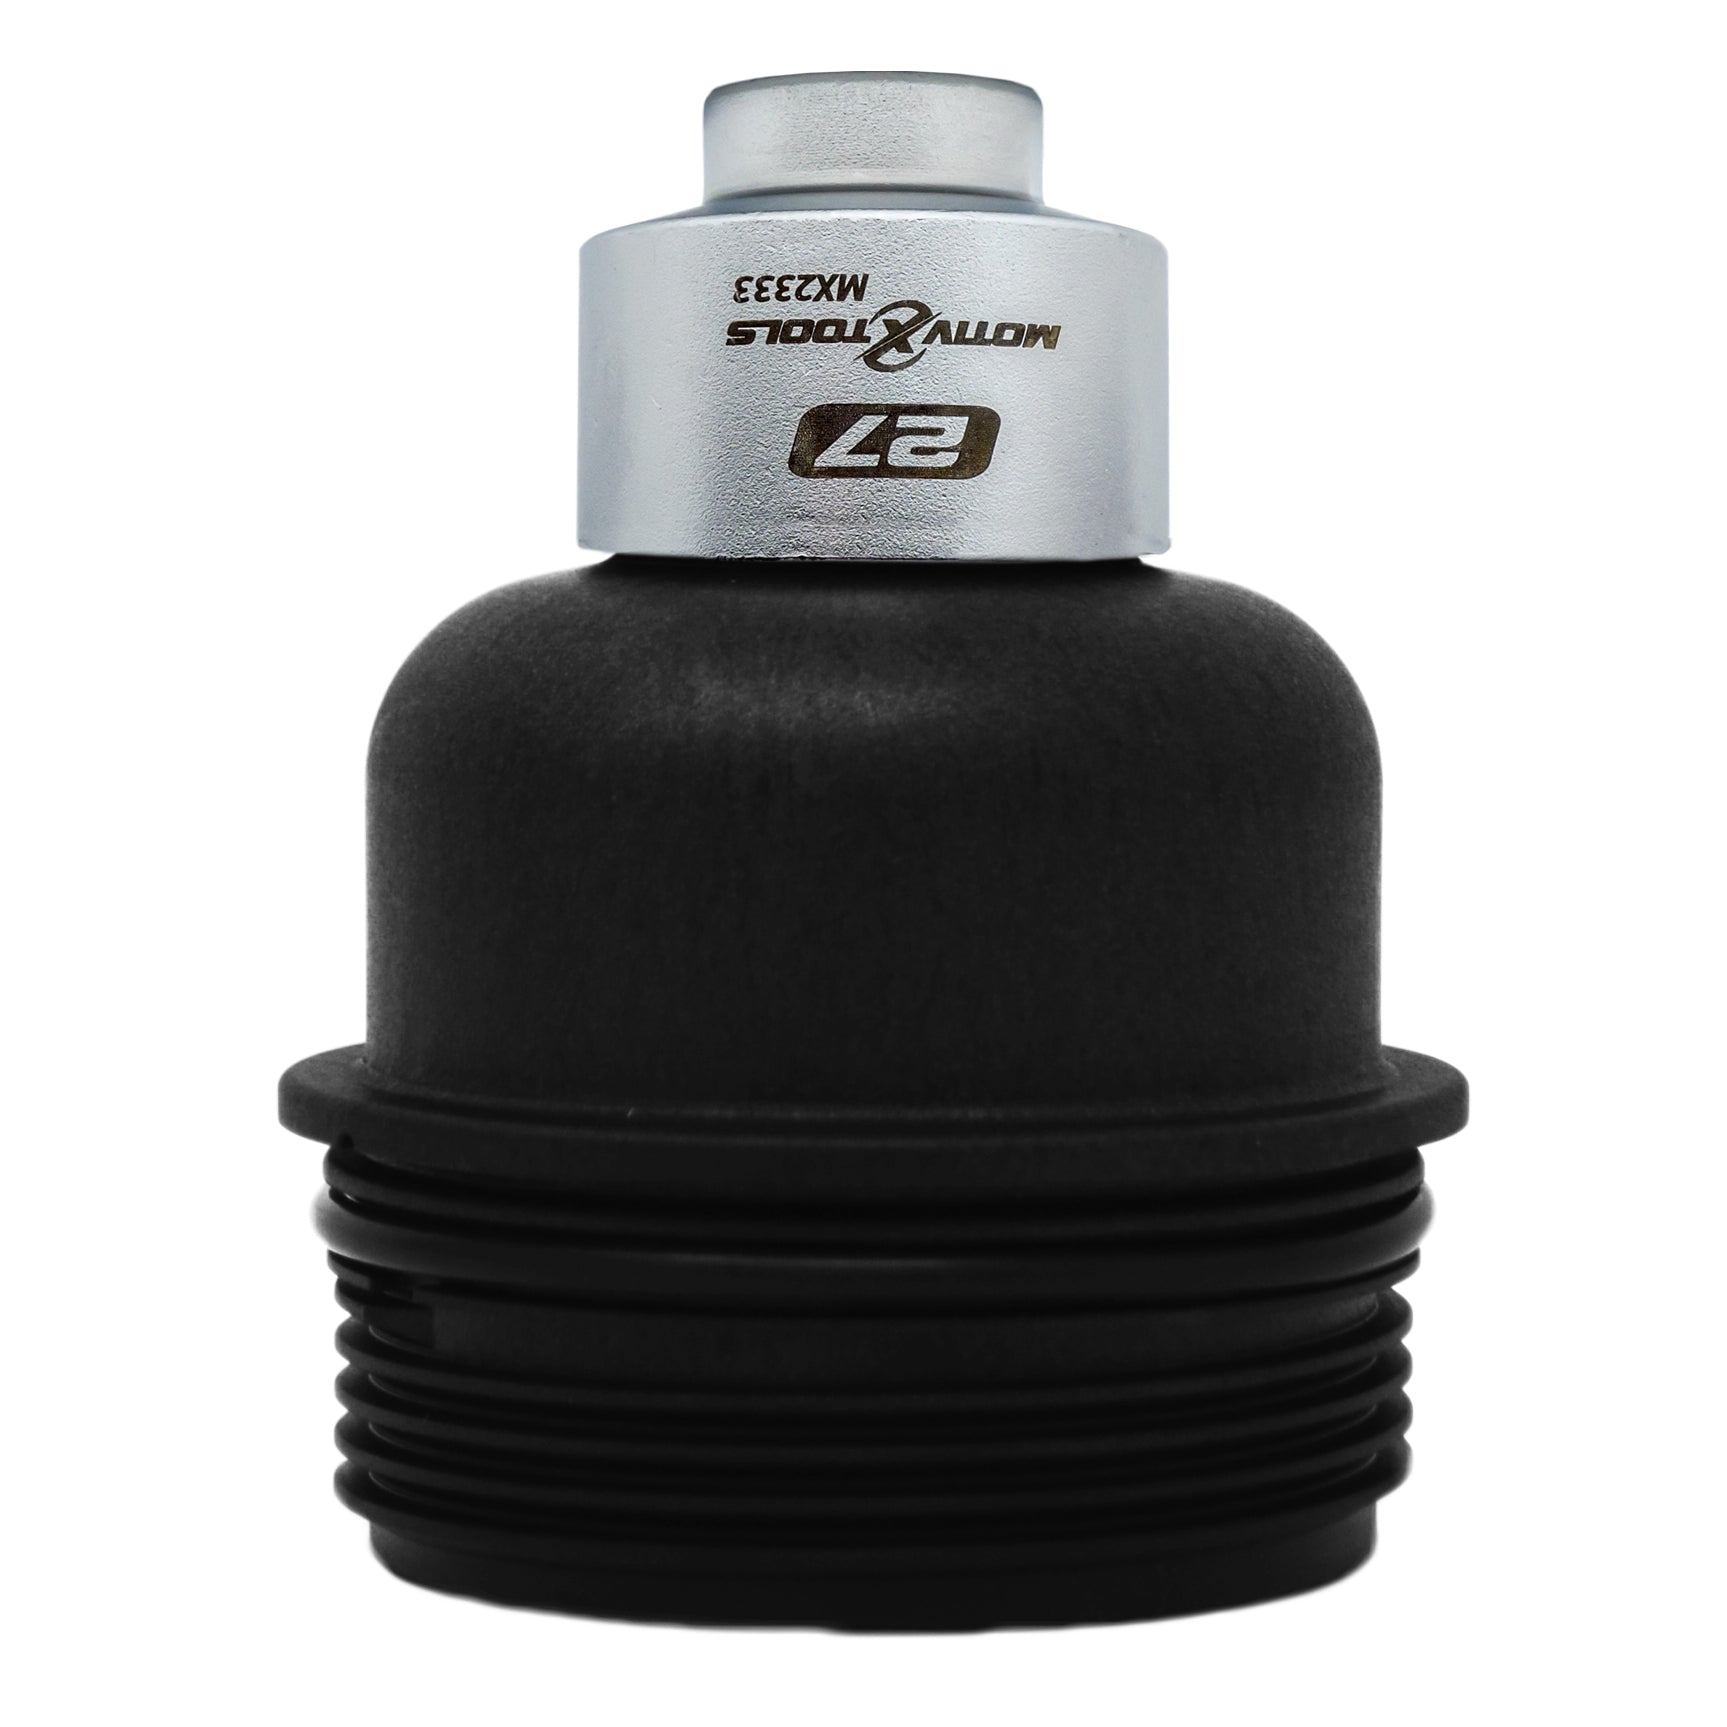 27mm Low Profile Oil Filter Socket